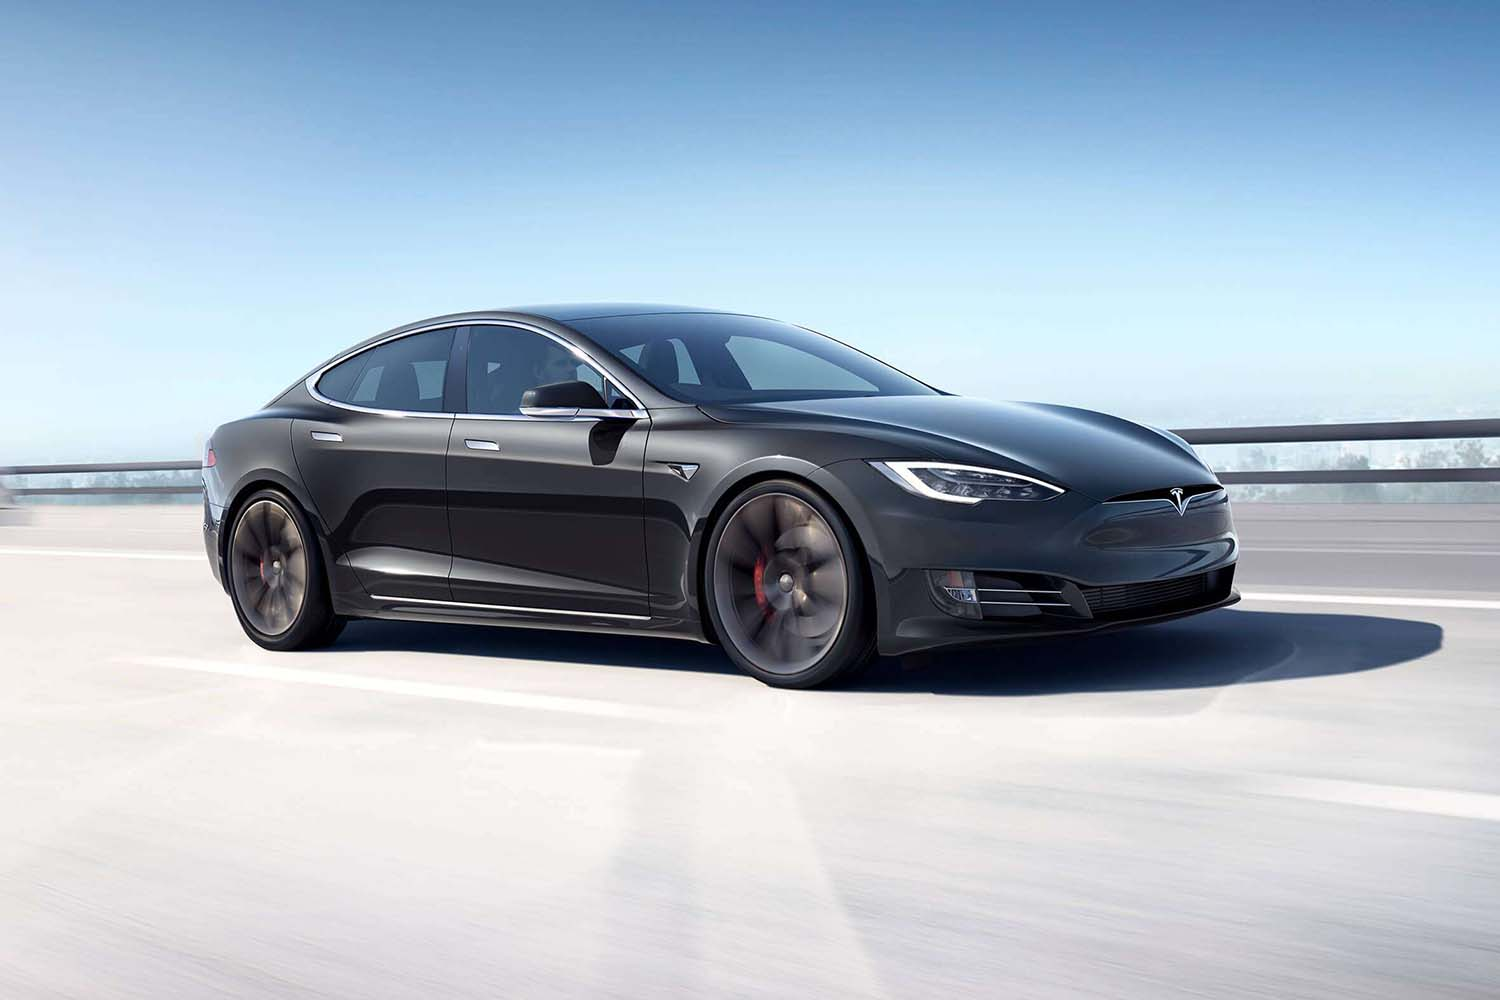 Top 10 Sustainable Luxury Cars for 2020: Tesla Model S